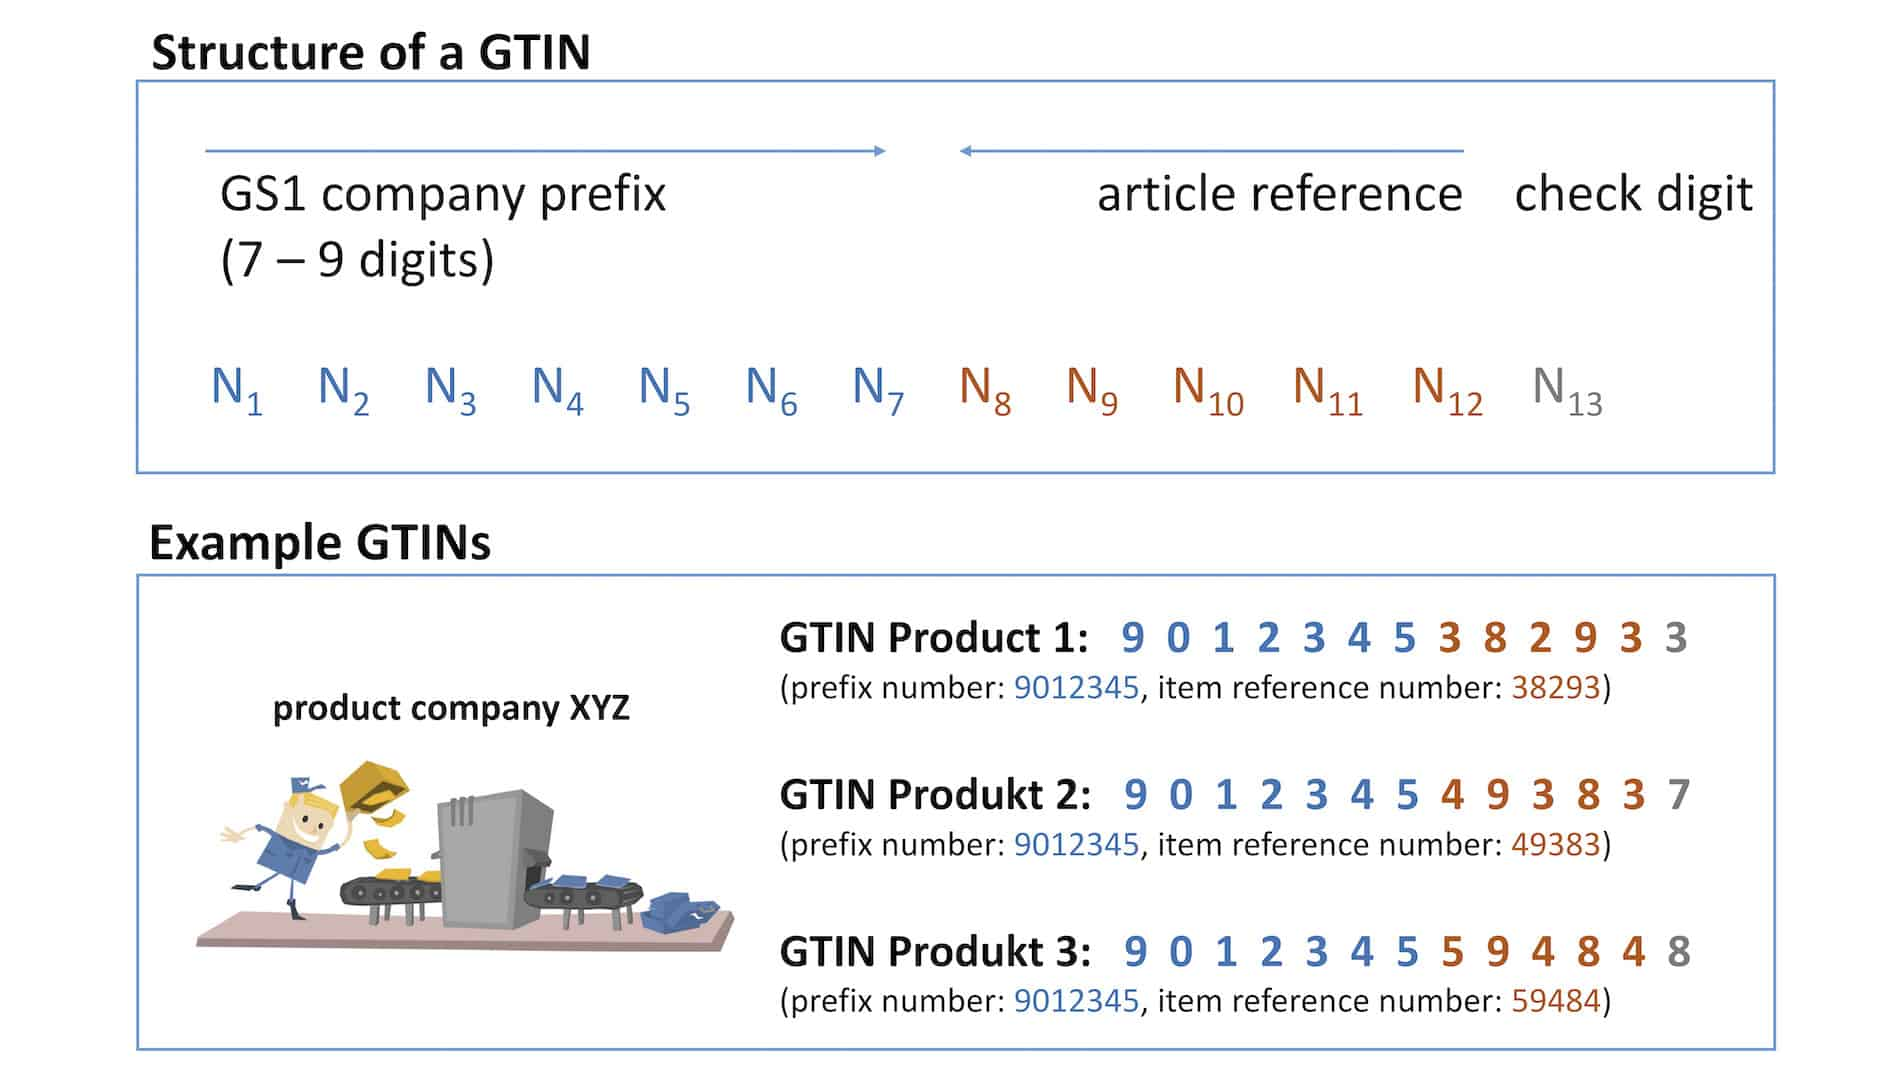 Structure of a GTIN